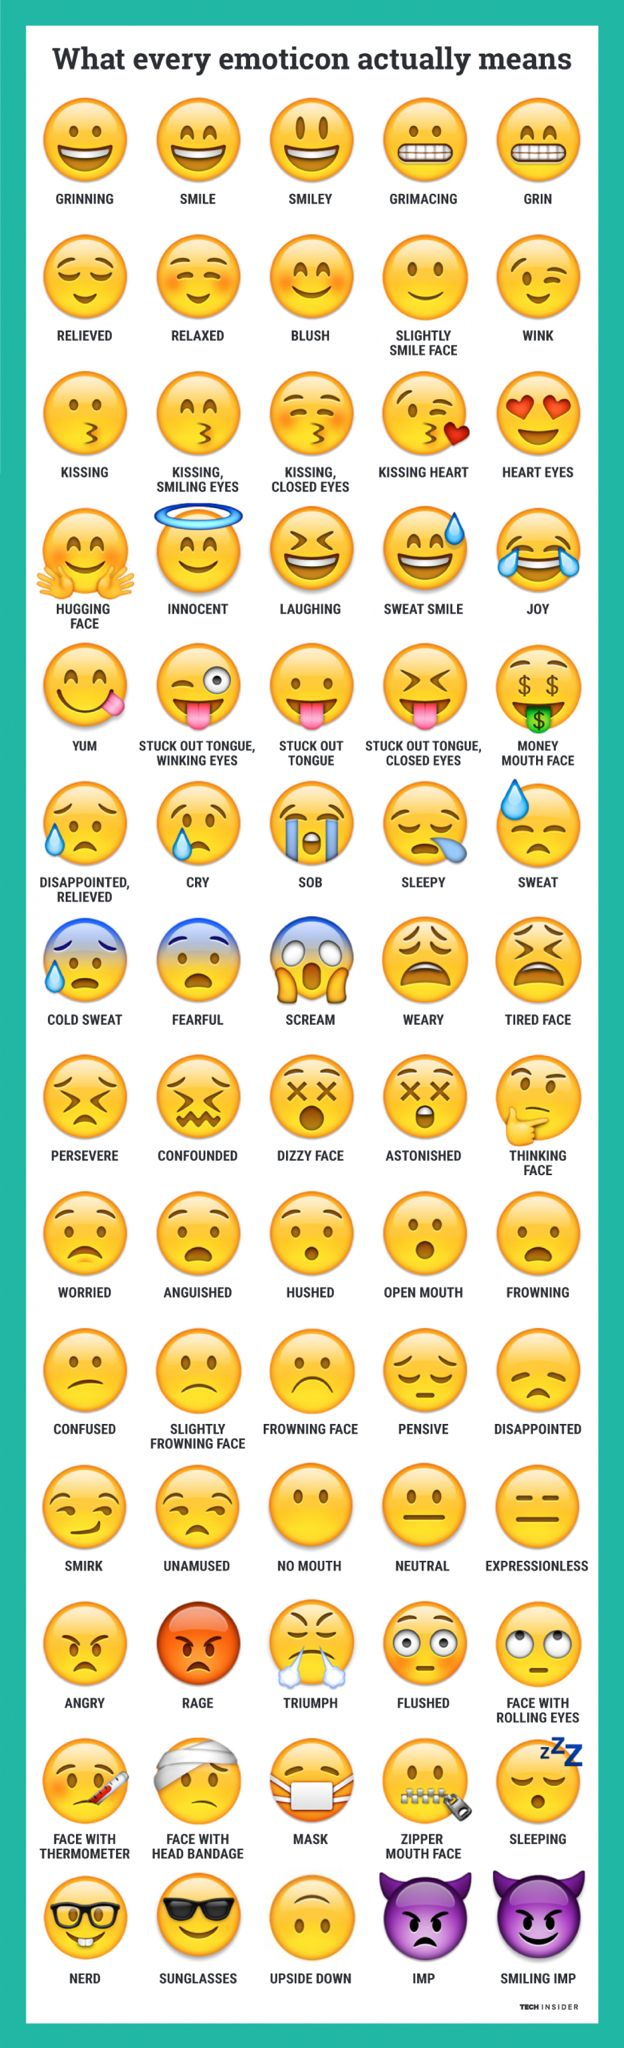 Emoji icon list objects with meanings and definitions a bit o emoji icon list objects with meanings and definitions a bit o this a bit o that pinterest emoji definitions and icons buycottarizona Images